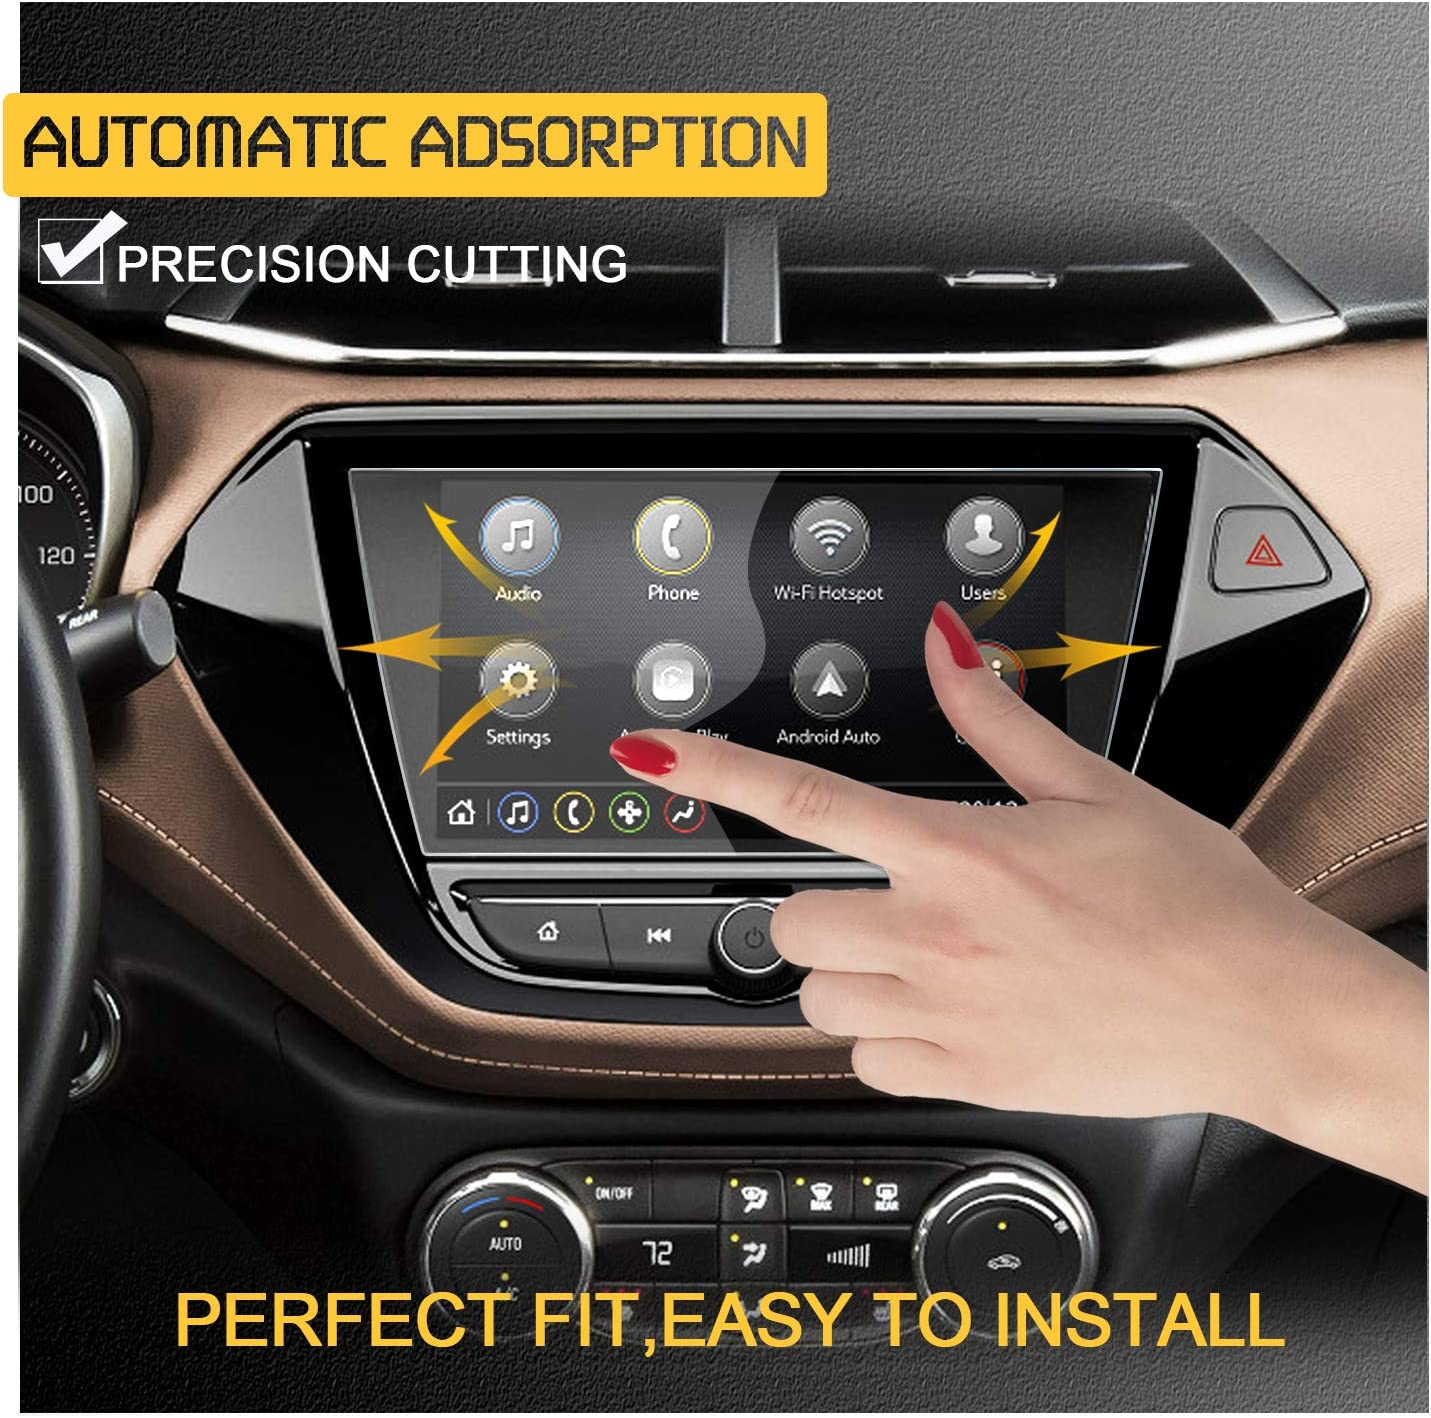 RUIYA Center Touch Control Screen Protector for 2021 Trailblazer Infotainment 3 System 7INCH Car Navigation Tempered Glass 9H Anti-Scratch and Shock Resistant Touch Screen Protector